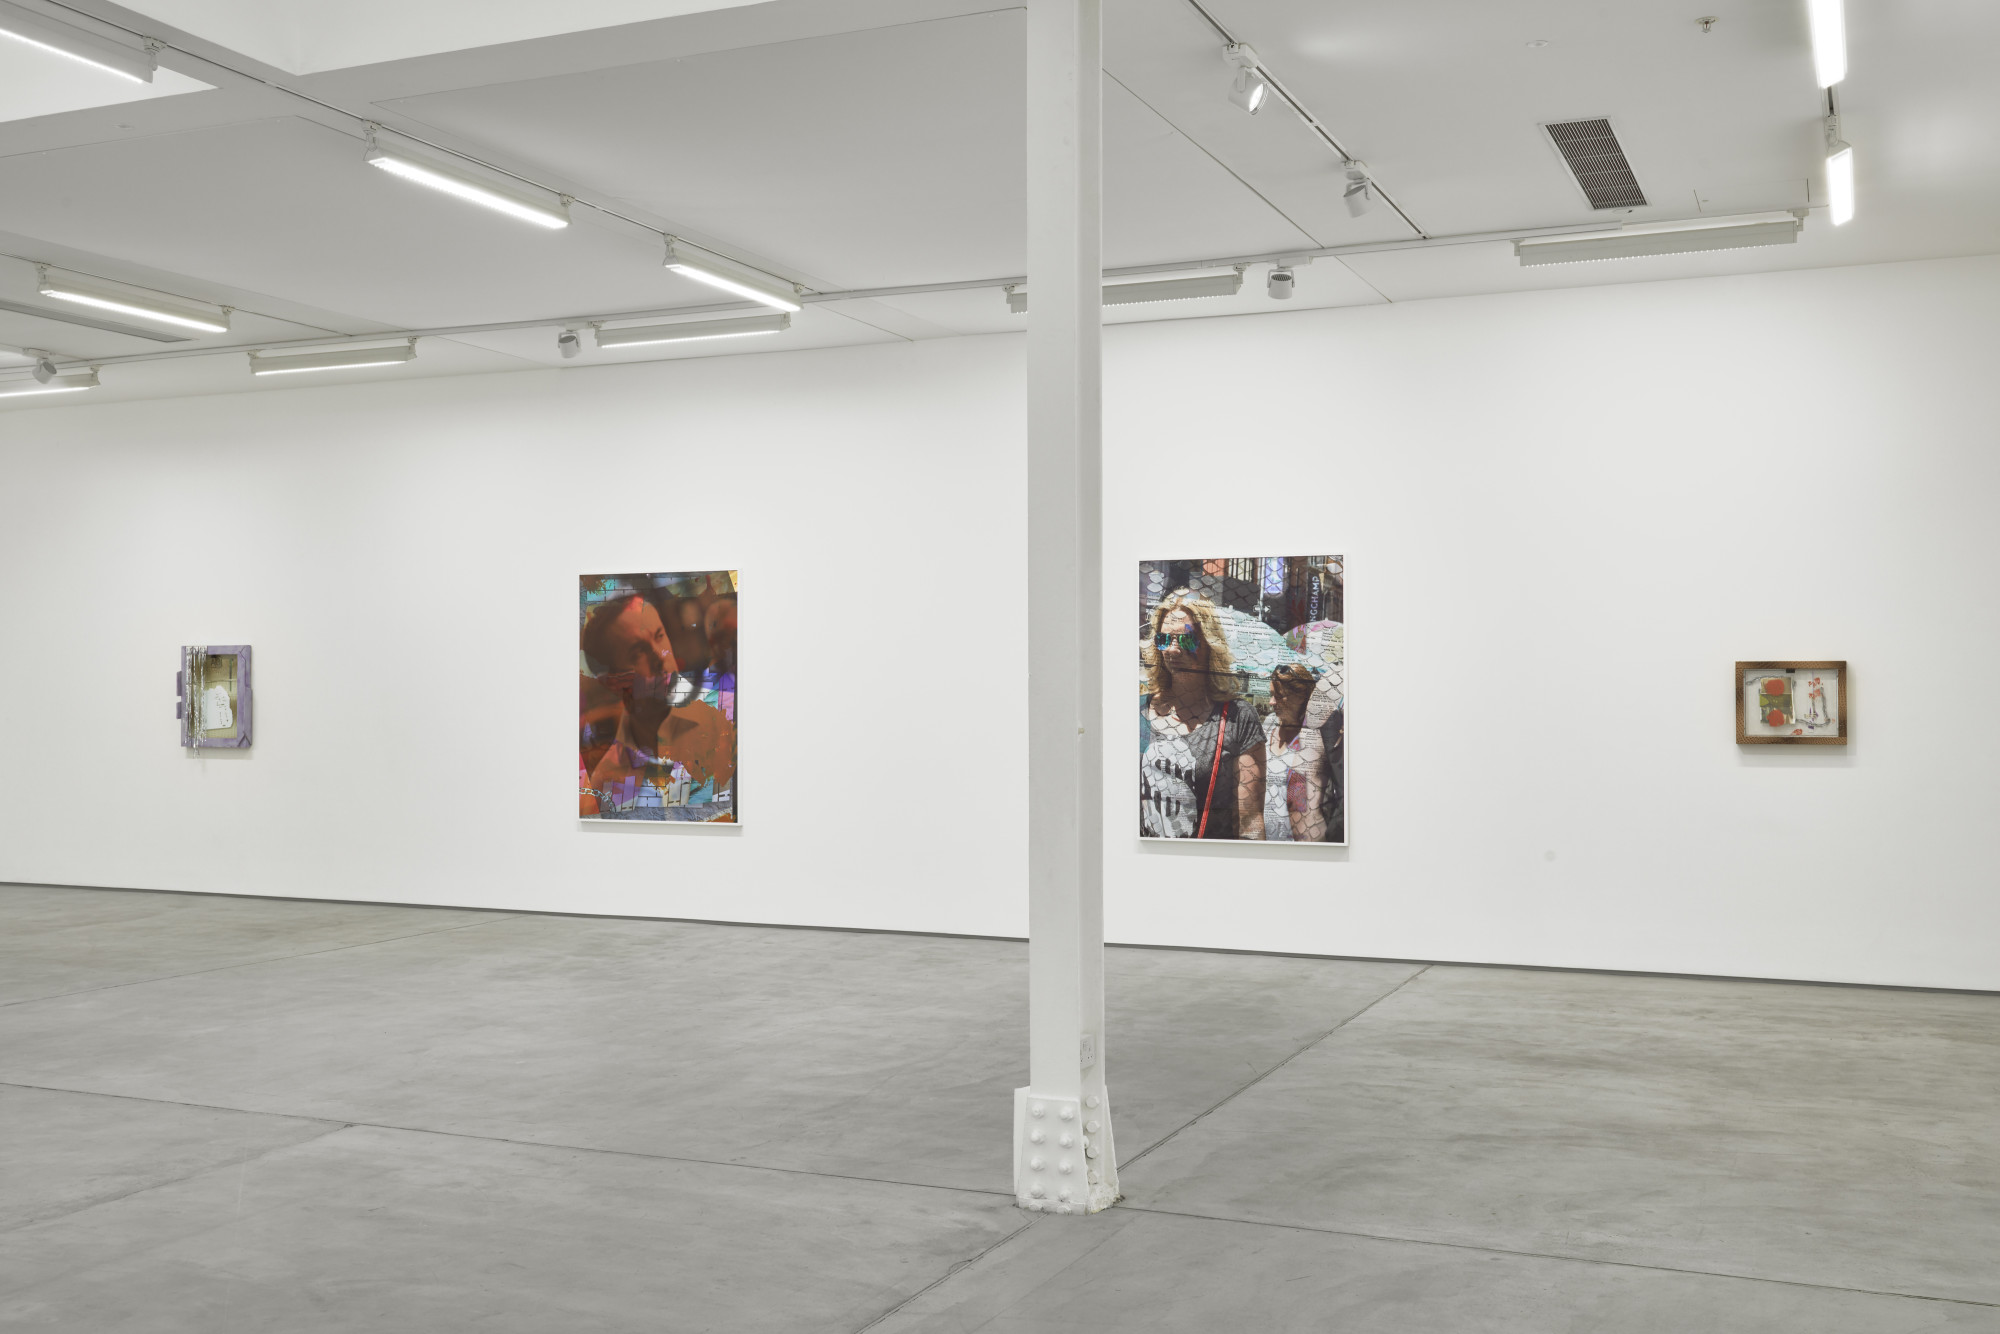 "<div class=""artwork_caption""><p>Installation view, 2018</p><p>Photo: Robert Glowacki </p></div>"